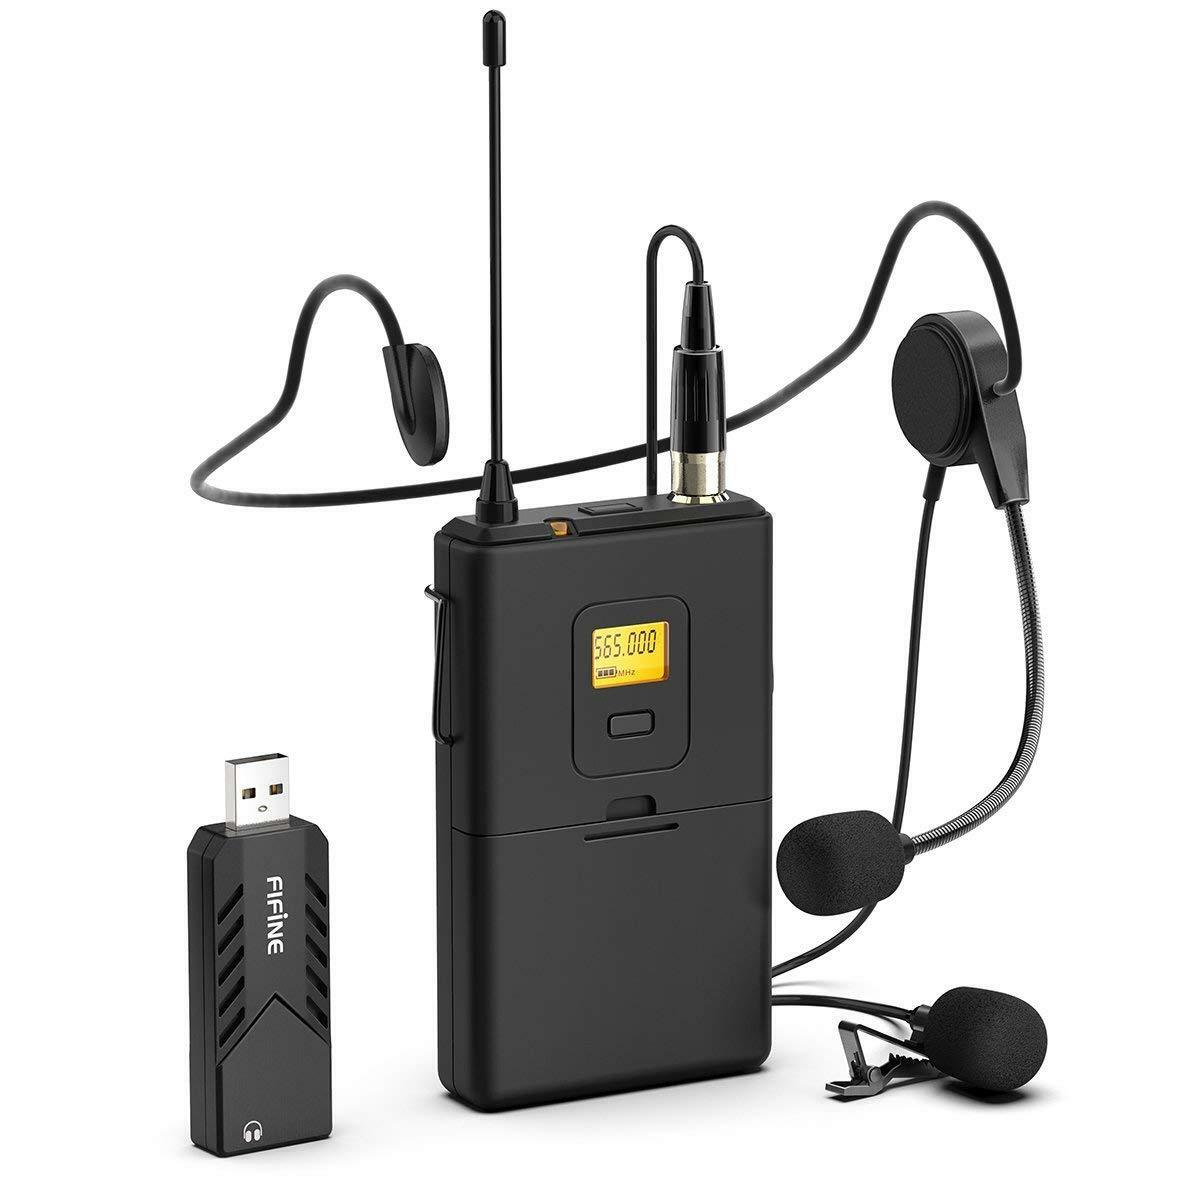 Portable Wireless Lavalier Microphone System For iPhone Xr   Xs Max   X    Xs